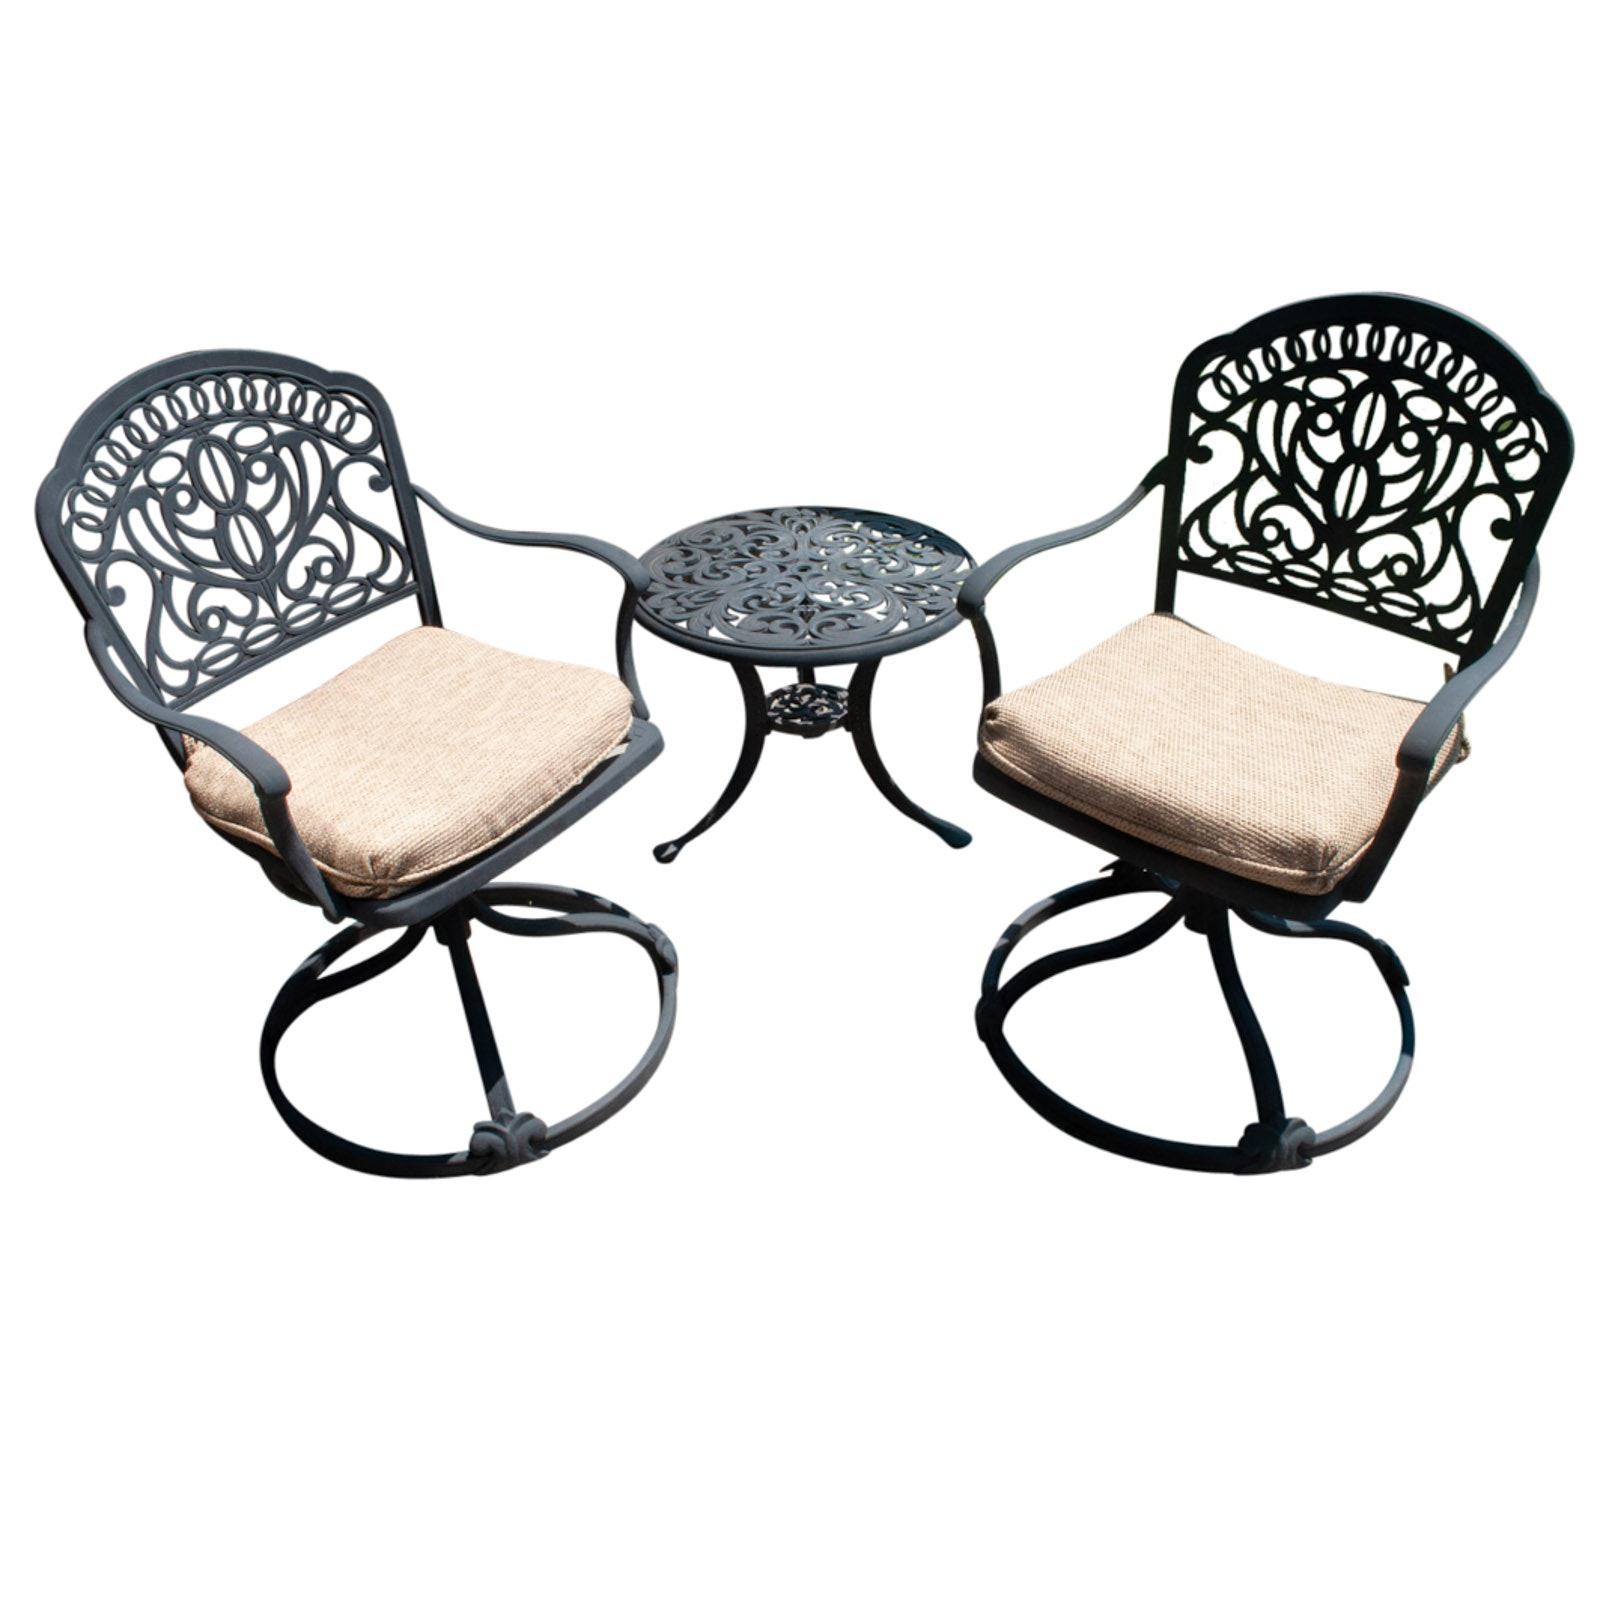 Metal Patio Chairs and Table